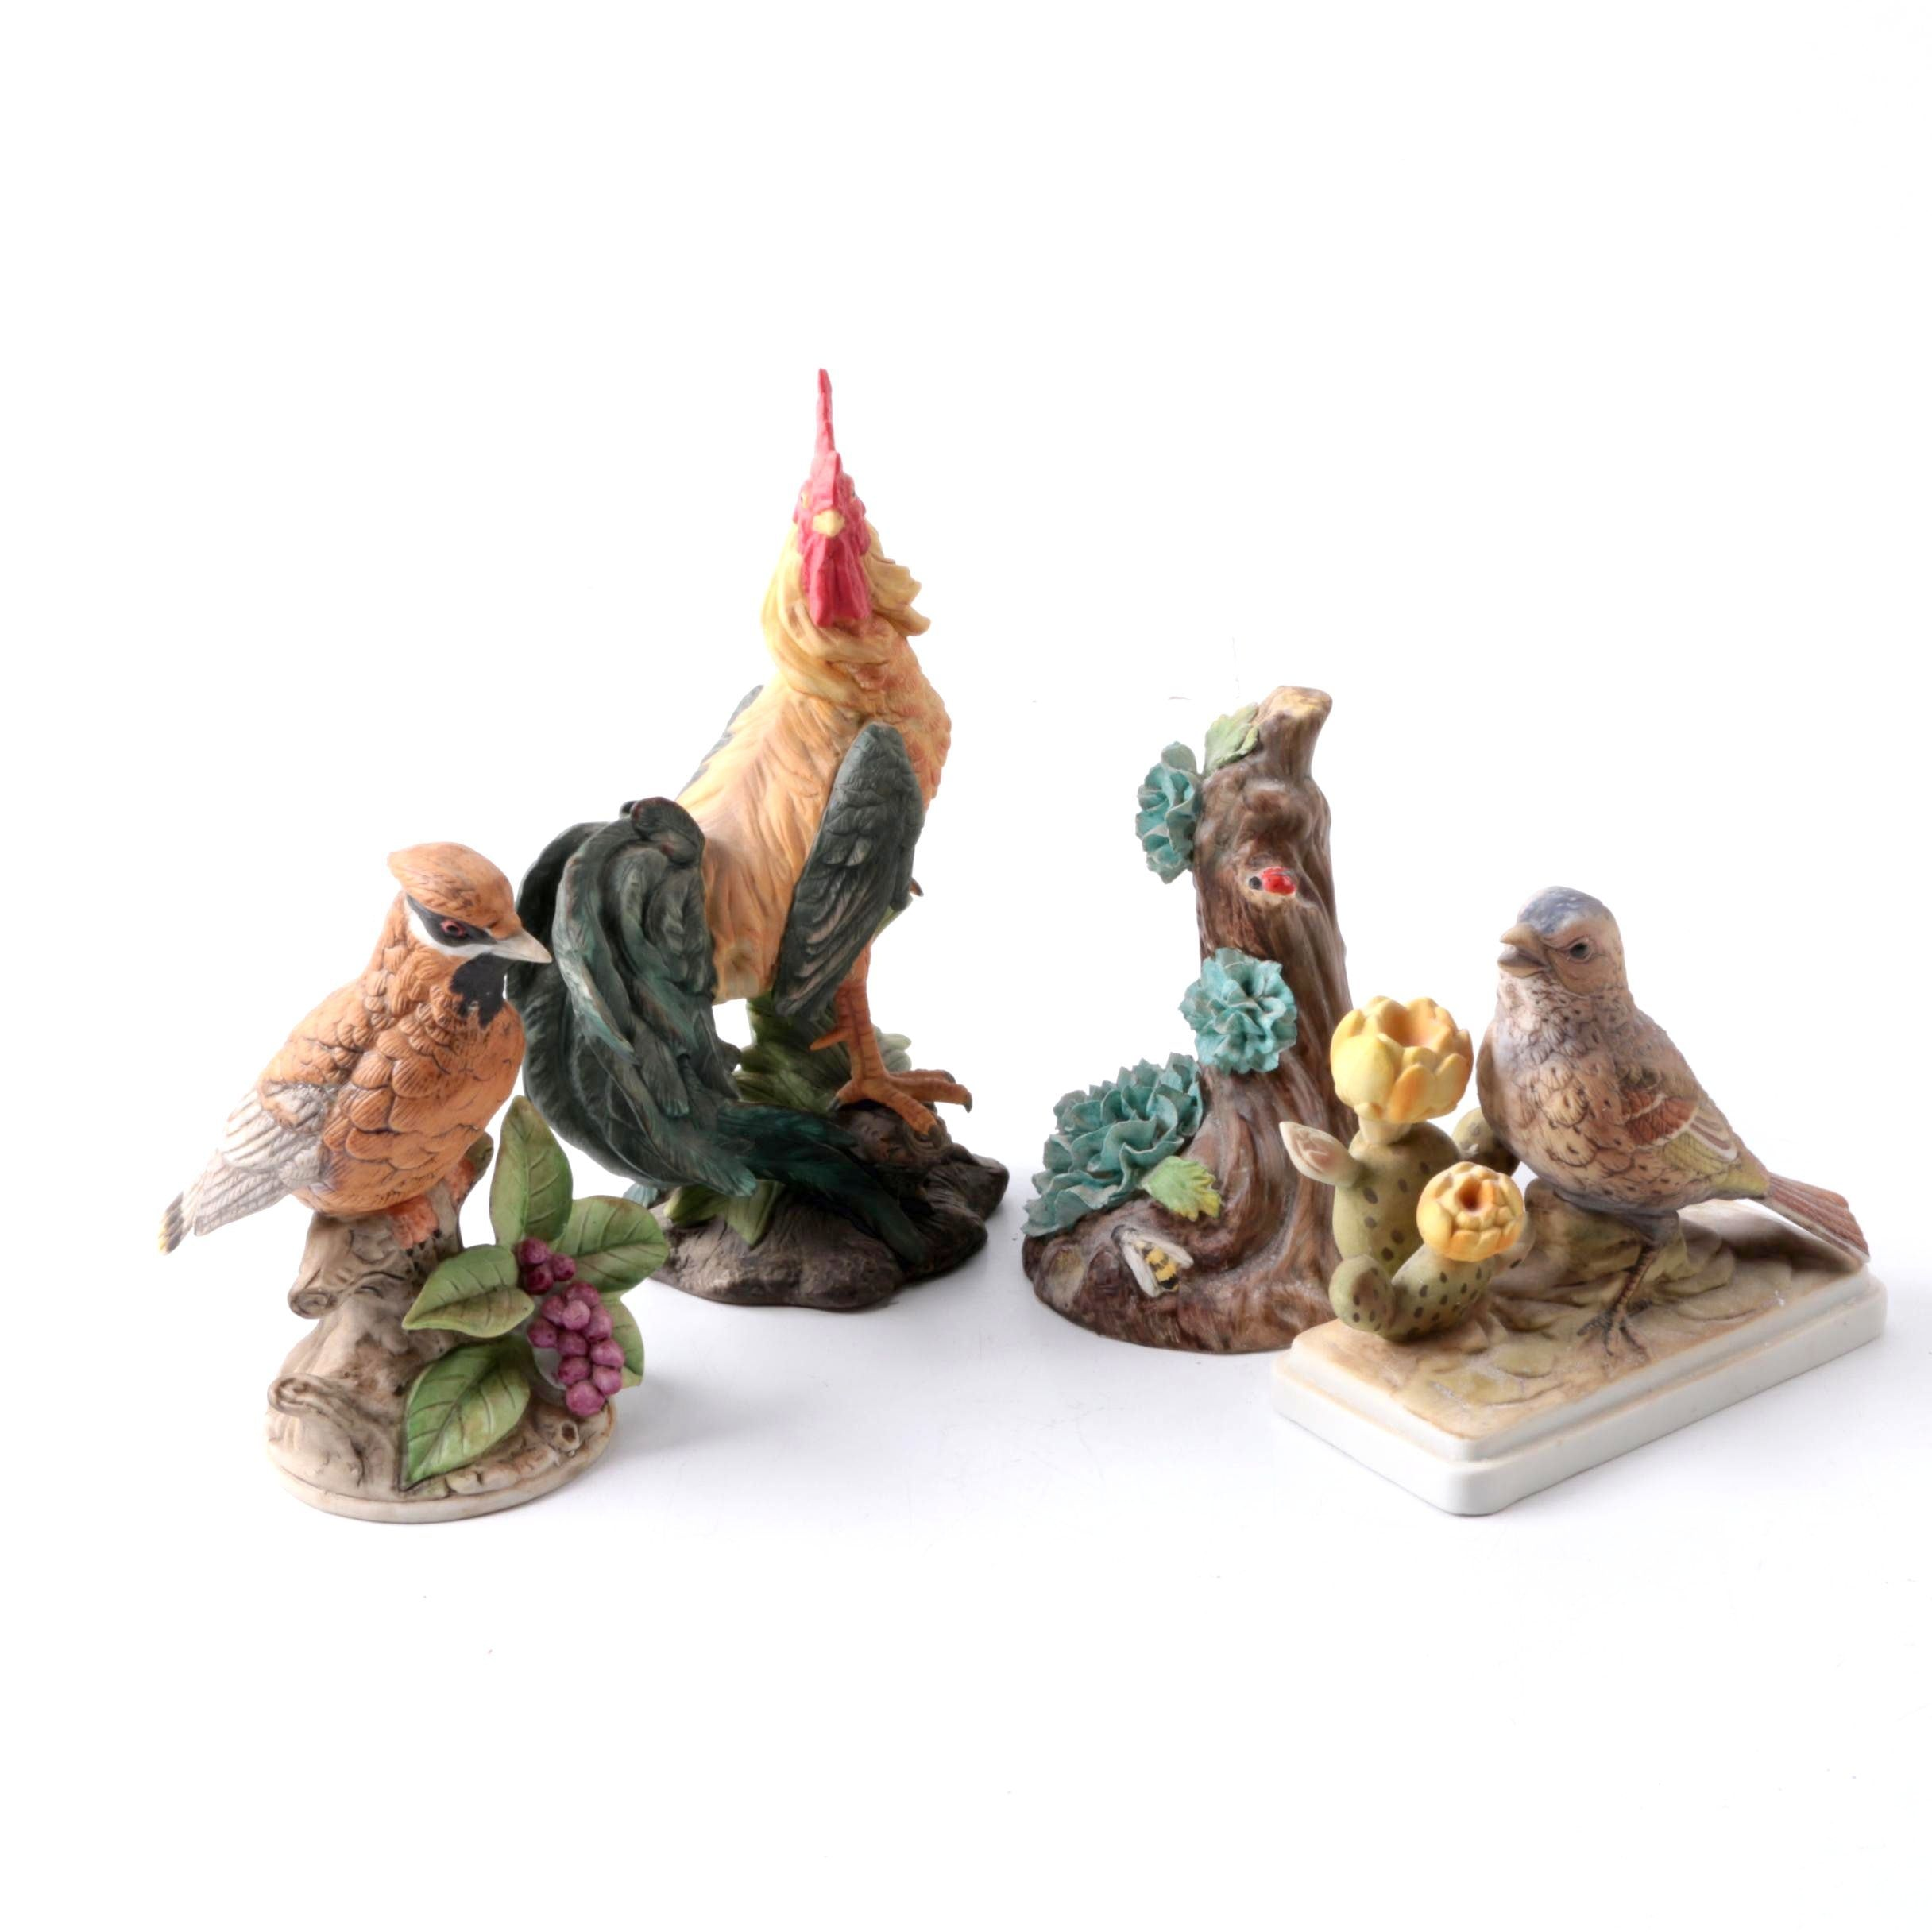 Porcelain Bird Figurines Including Lefton and Aynsley